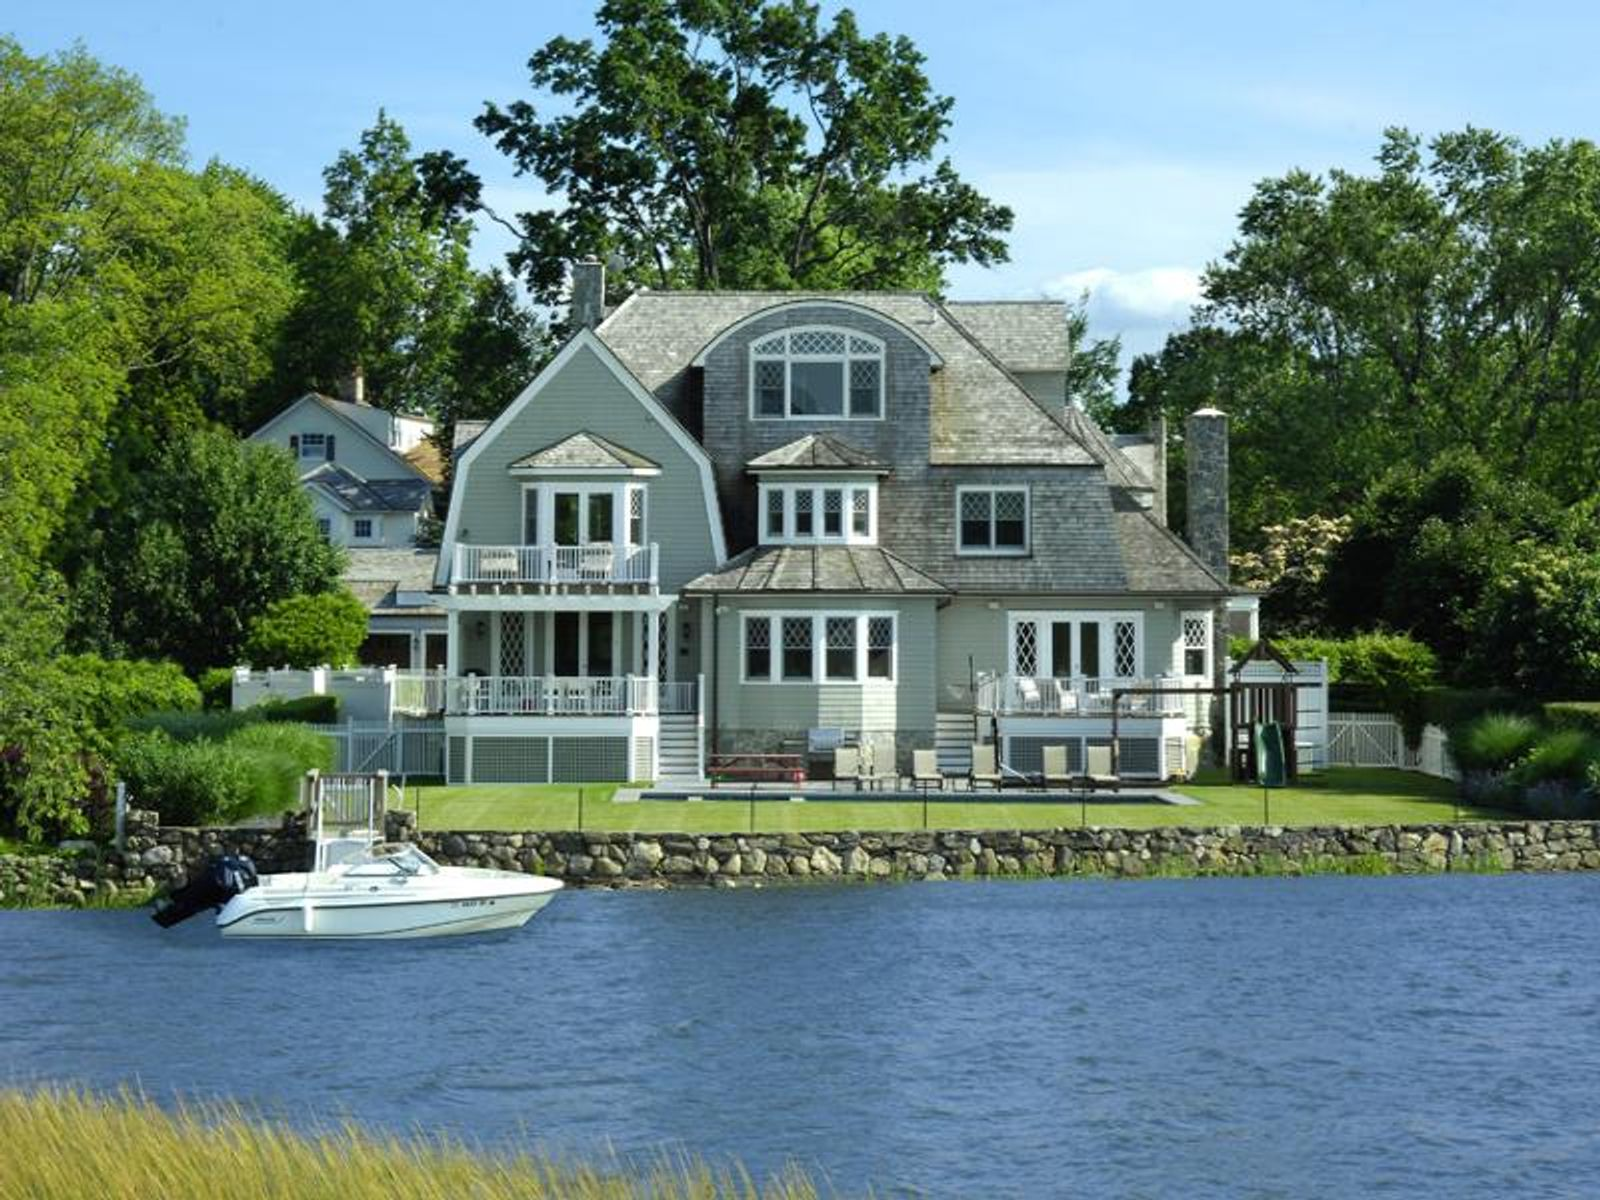 Nantucket shingle style old greenwich ct single family for Luxury homes for sale in greenwich ct